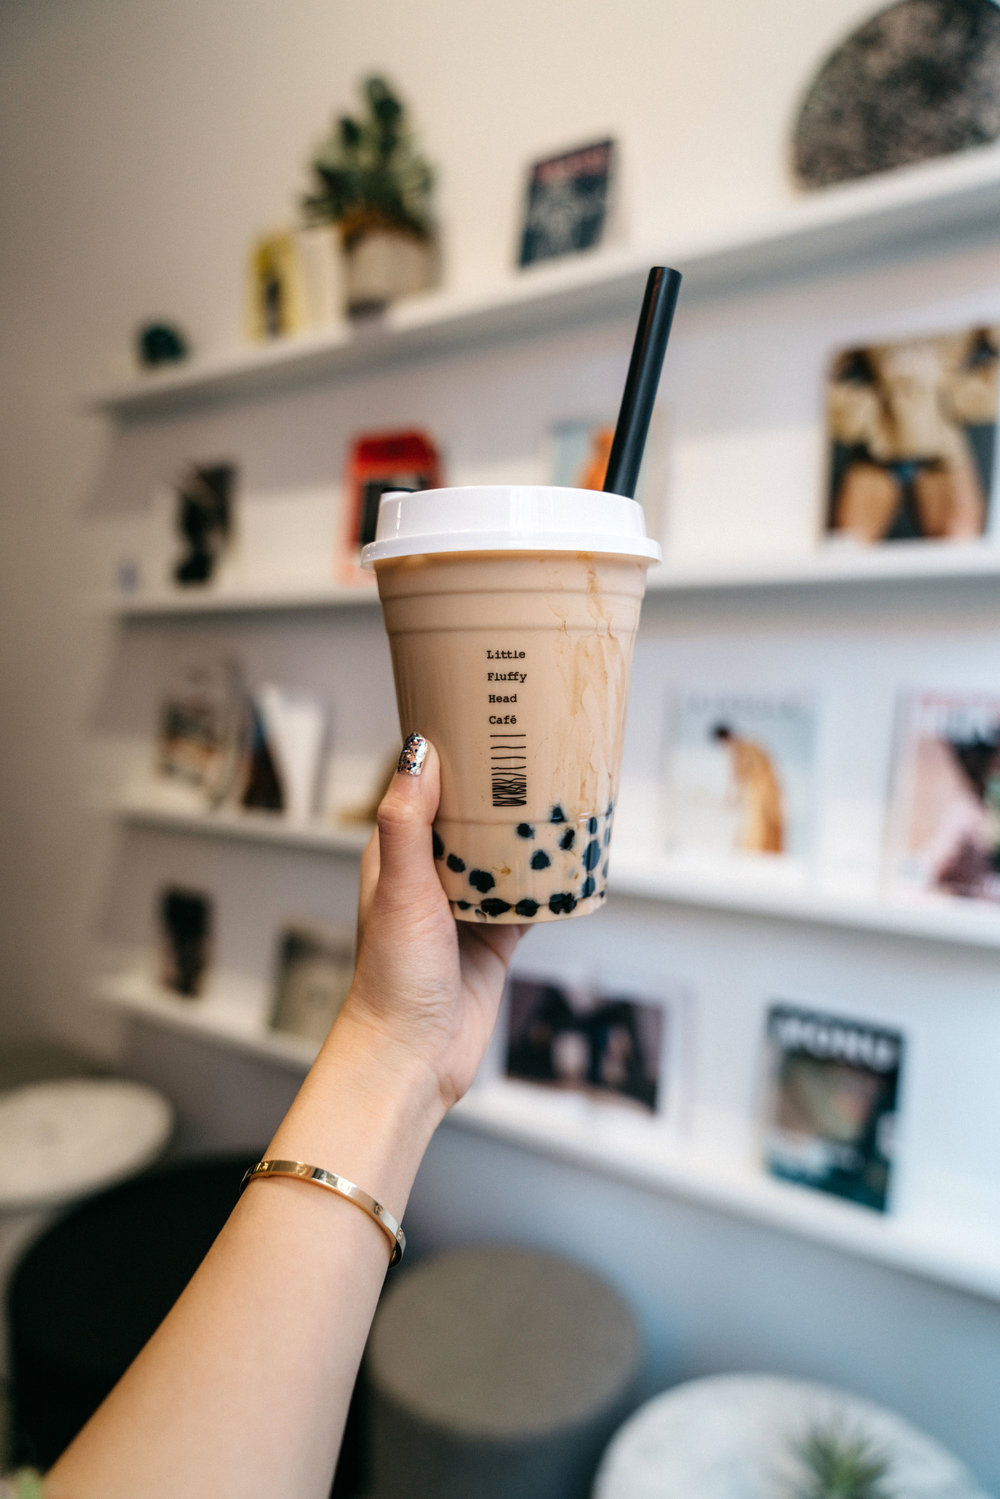 Little Fluffy Head Cafe